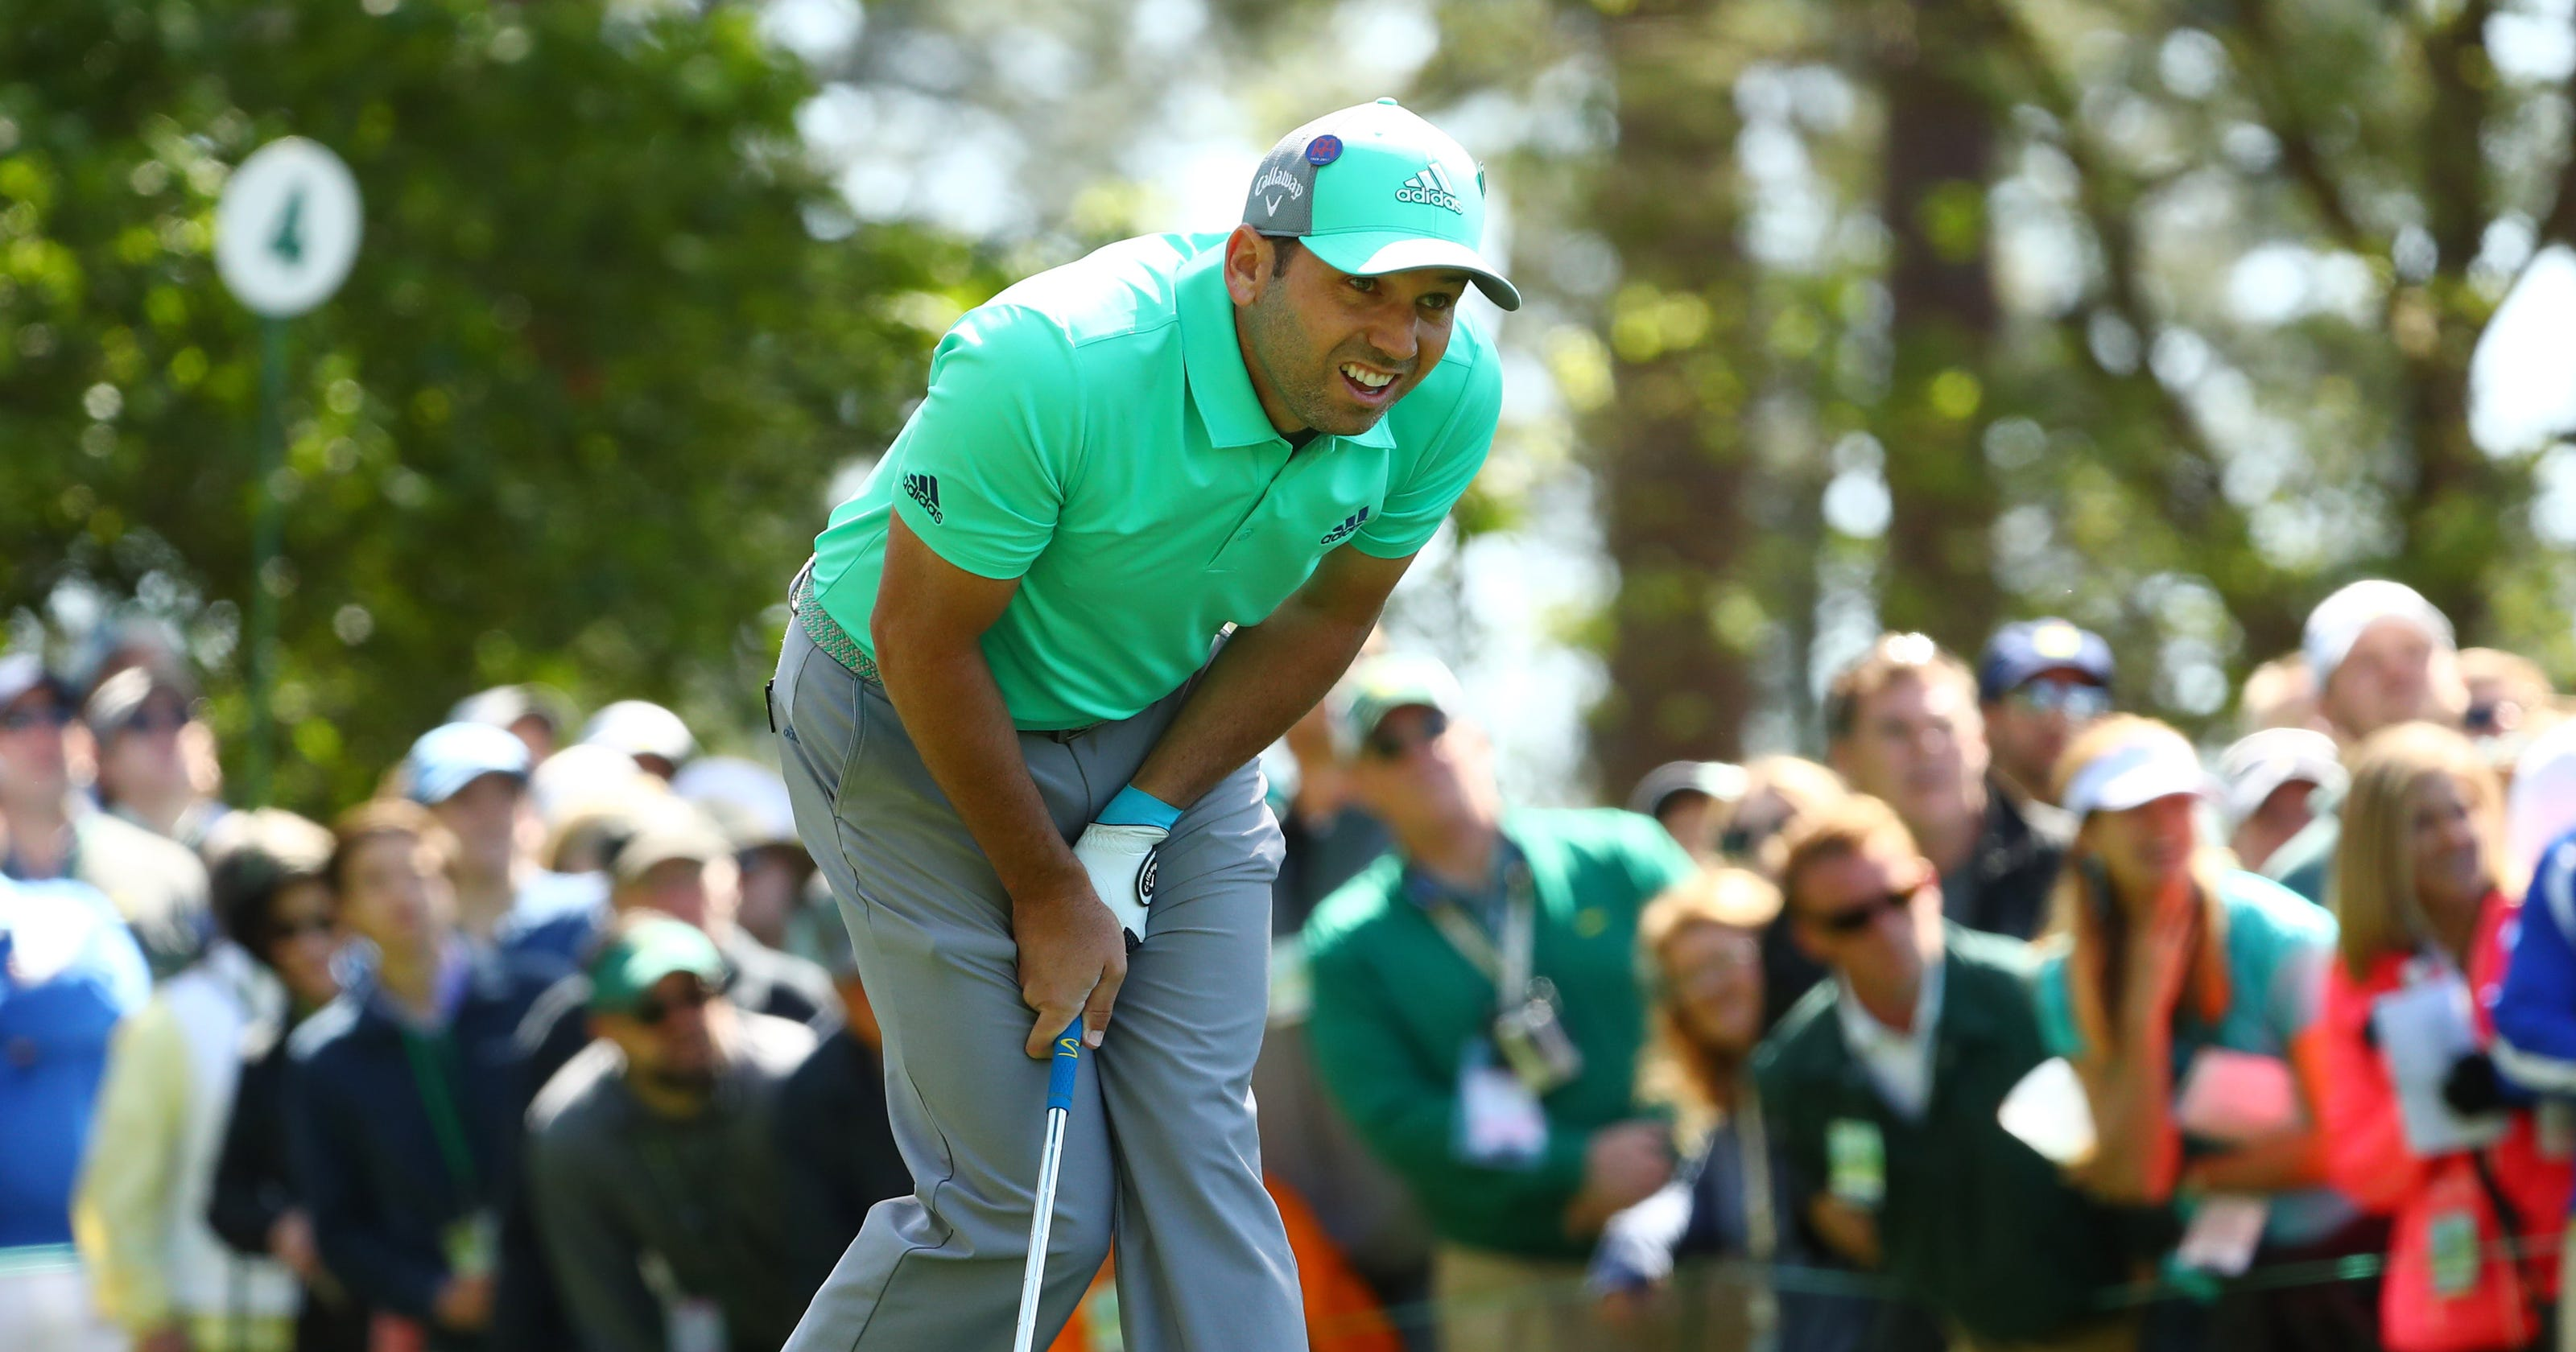 masters sergio garcia blows up on 15th hole in first round